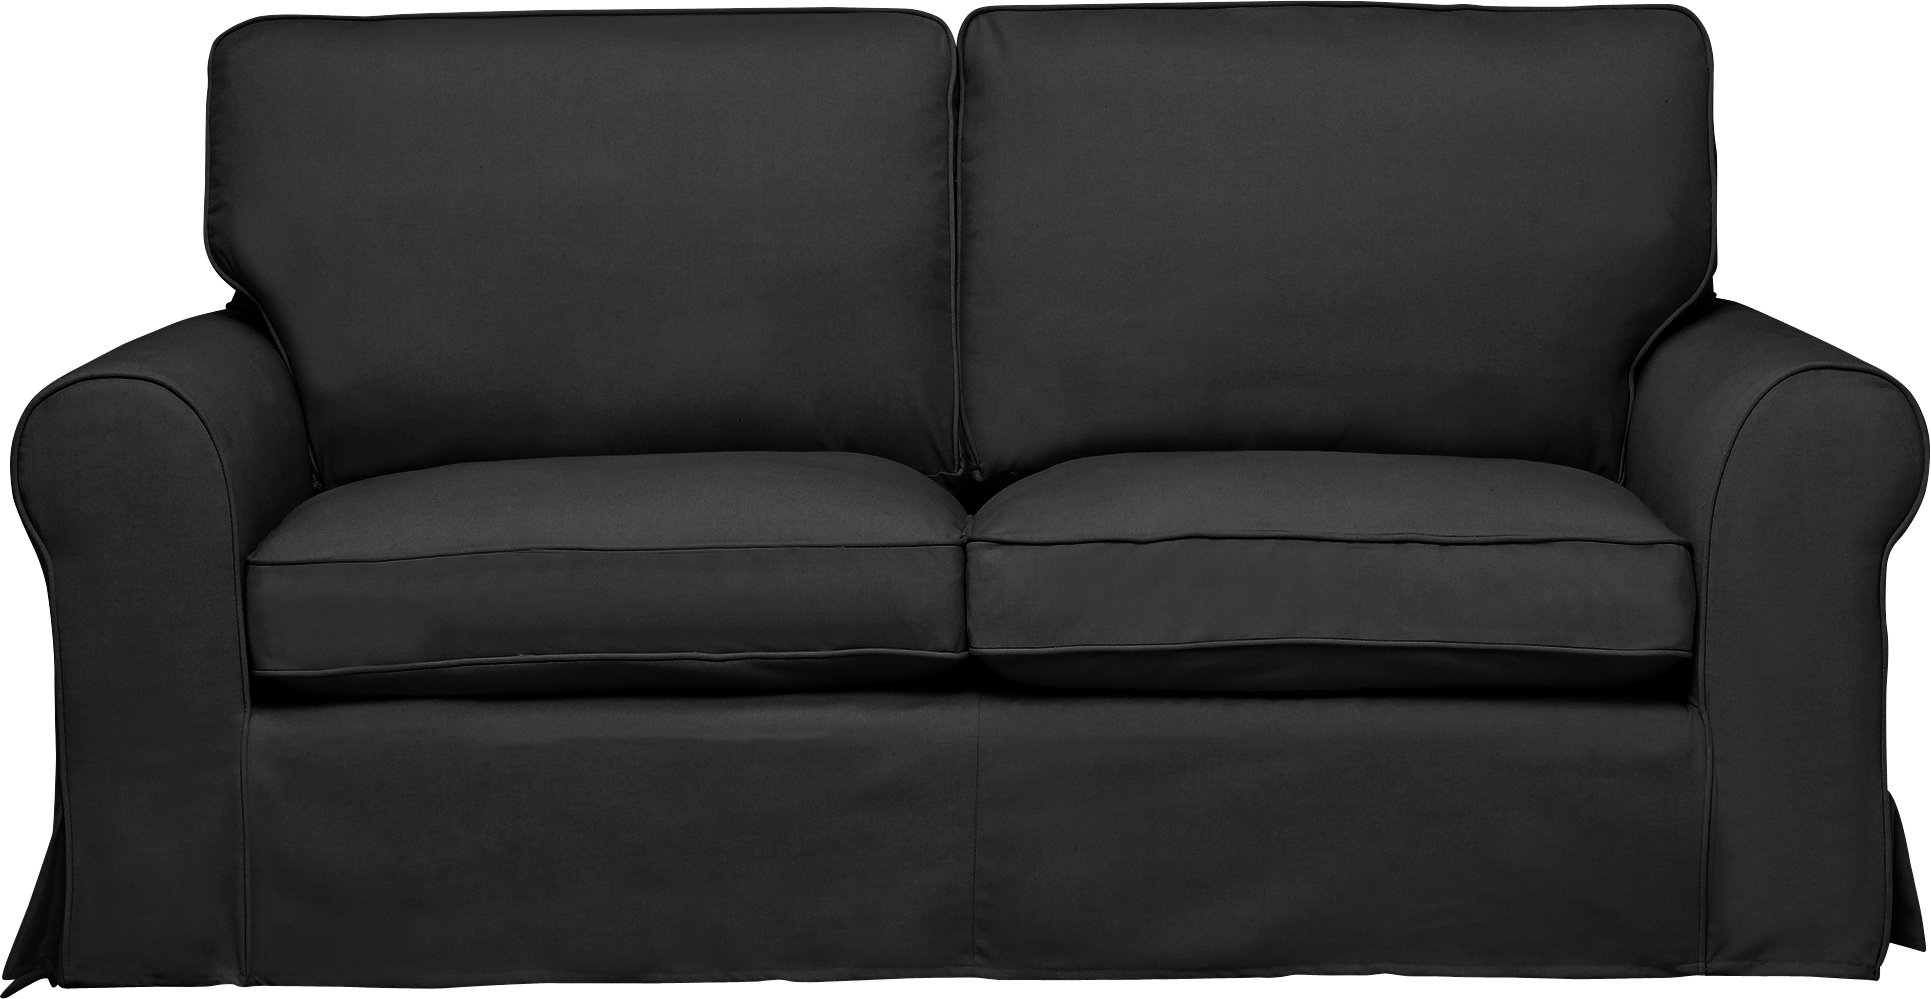 Buy HOME Charlotte 3 Seater Fabric Sofa Loose Cover Charcoal at Argos u